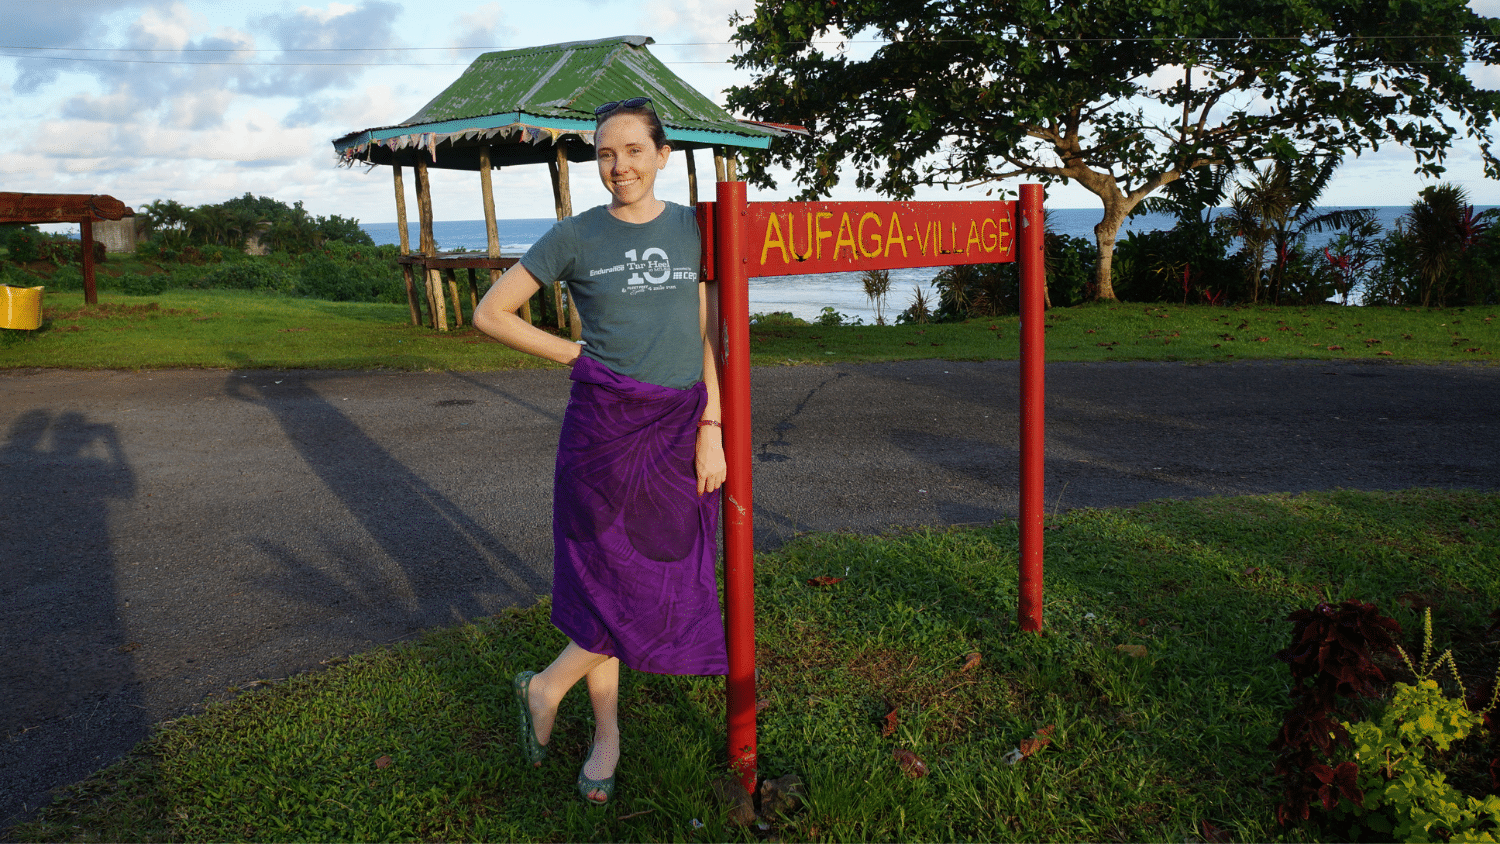 Natalie Ziemba stands in front of a sign that reads Aufaga Village